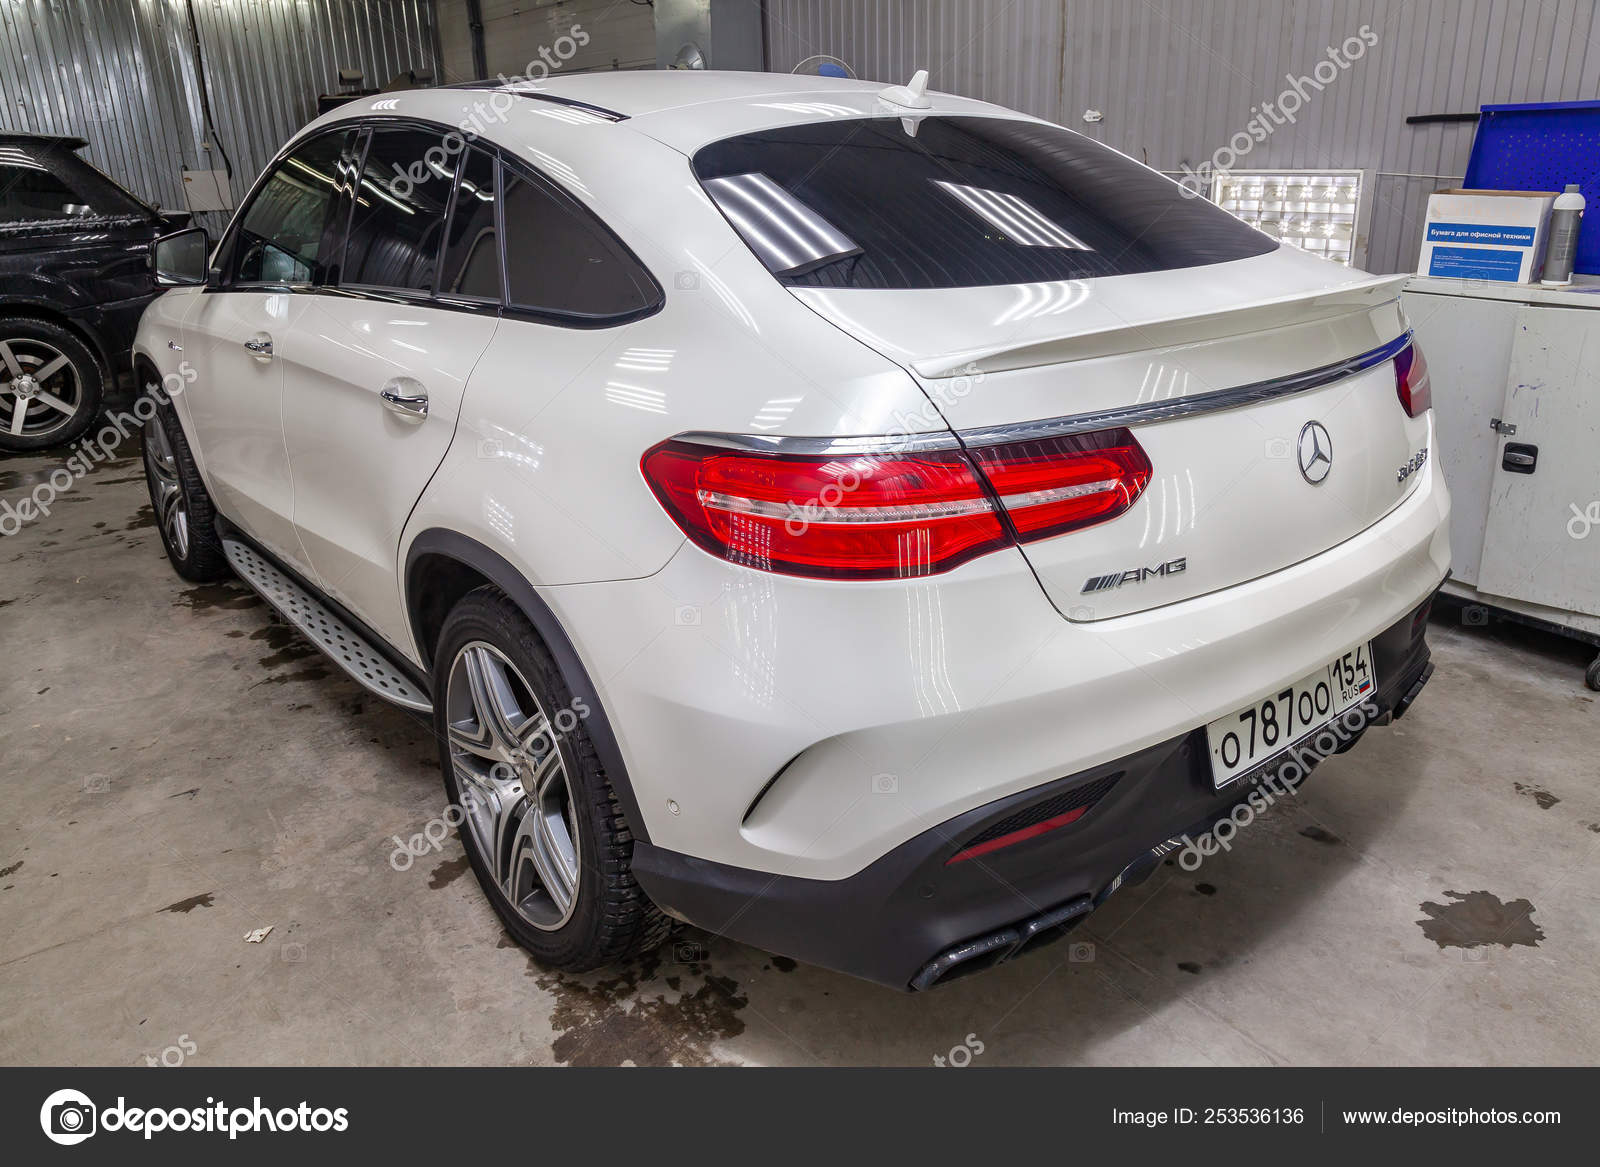 Rear View Of Luxury Very Expensive New White Mercedes Benz Gle C Stock Editorial Photo C Aleksandrkondratov 253536136